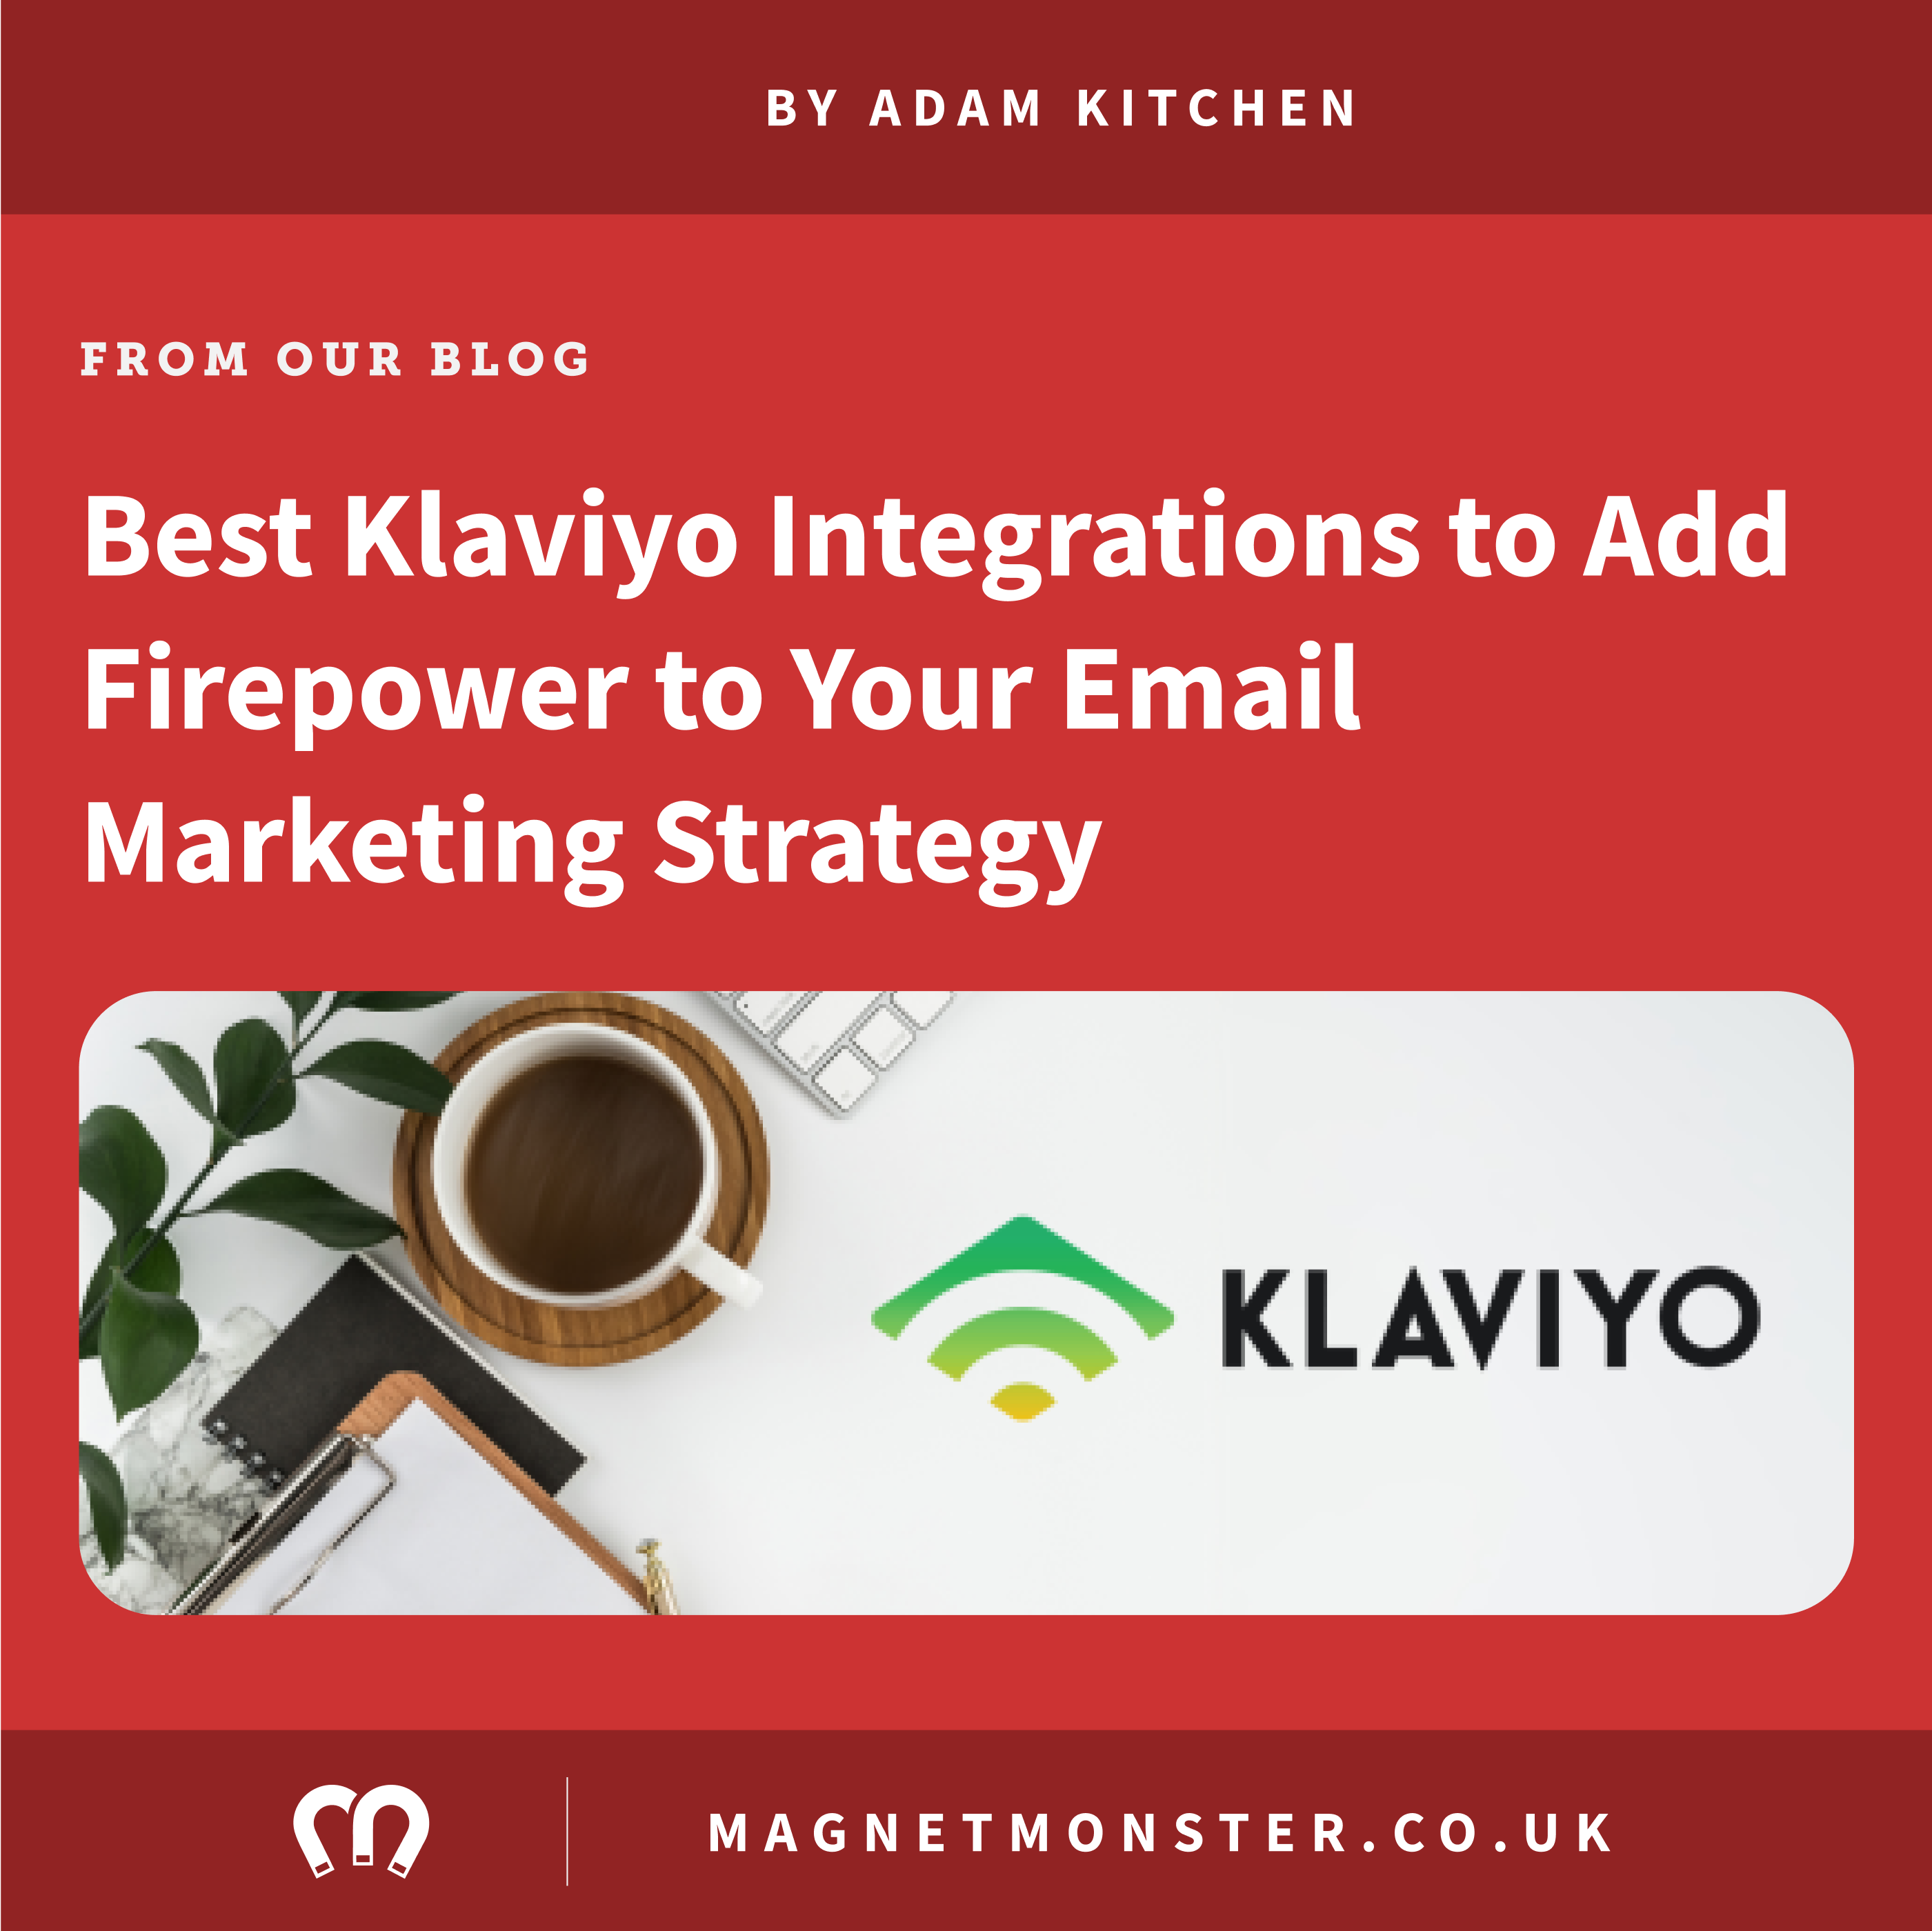 Best Klaviyo Integrations to Add Firepower to Your Email Marketing Strategy